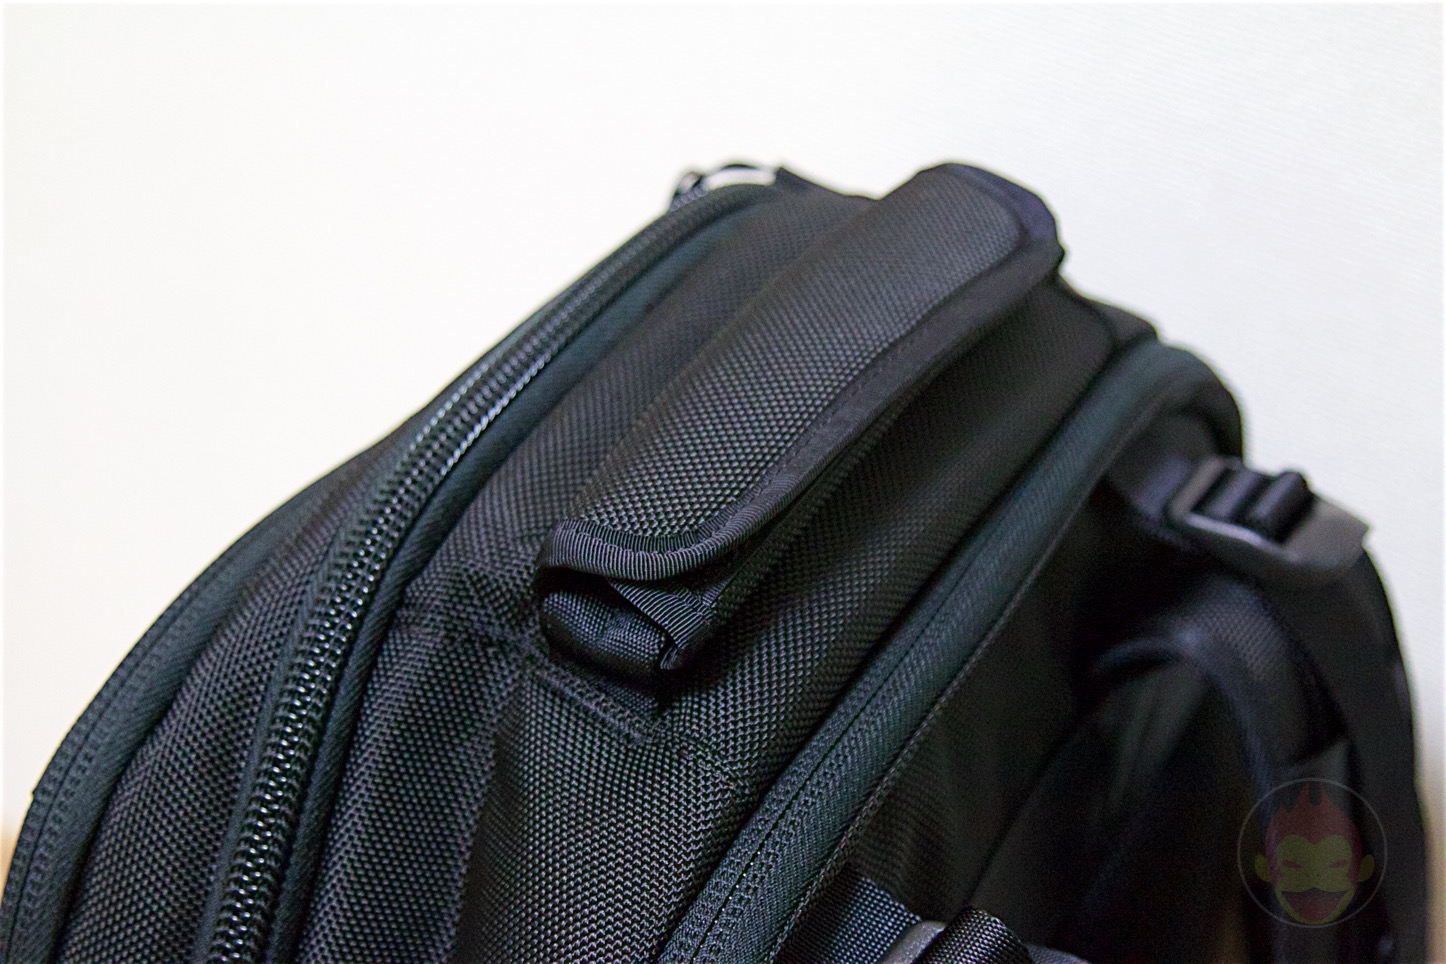 Aer-Travel-BackPack-on-Kickstarter-08.jpg